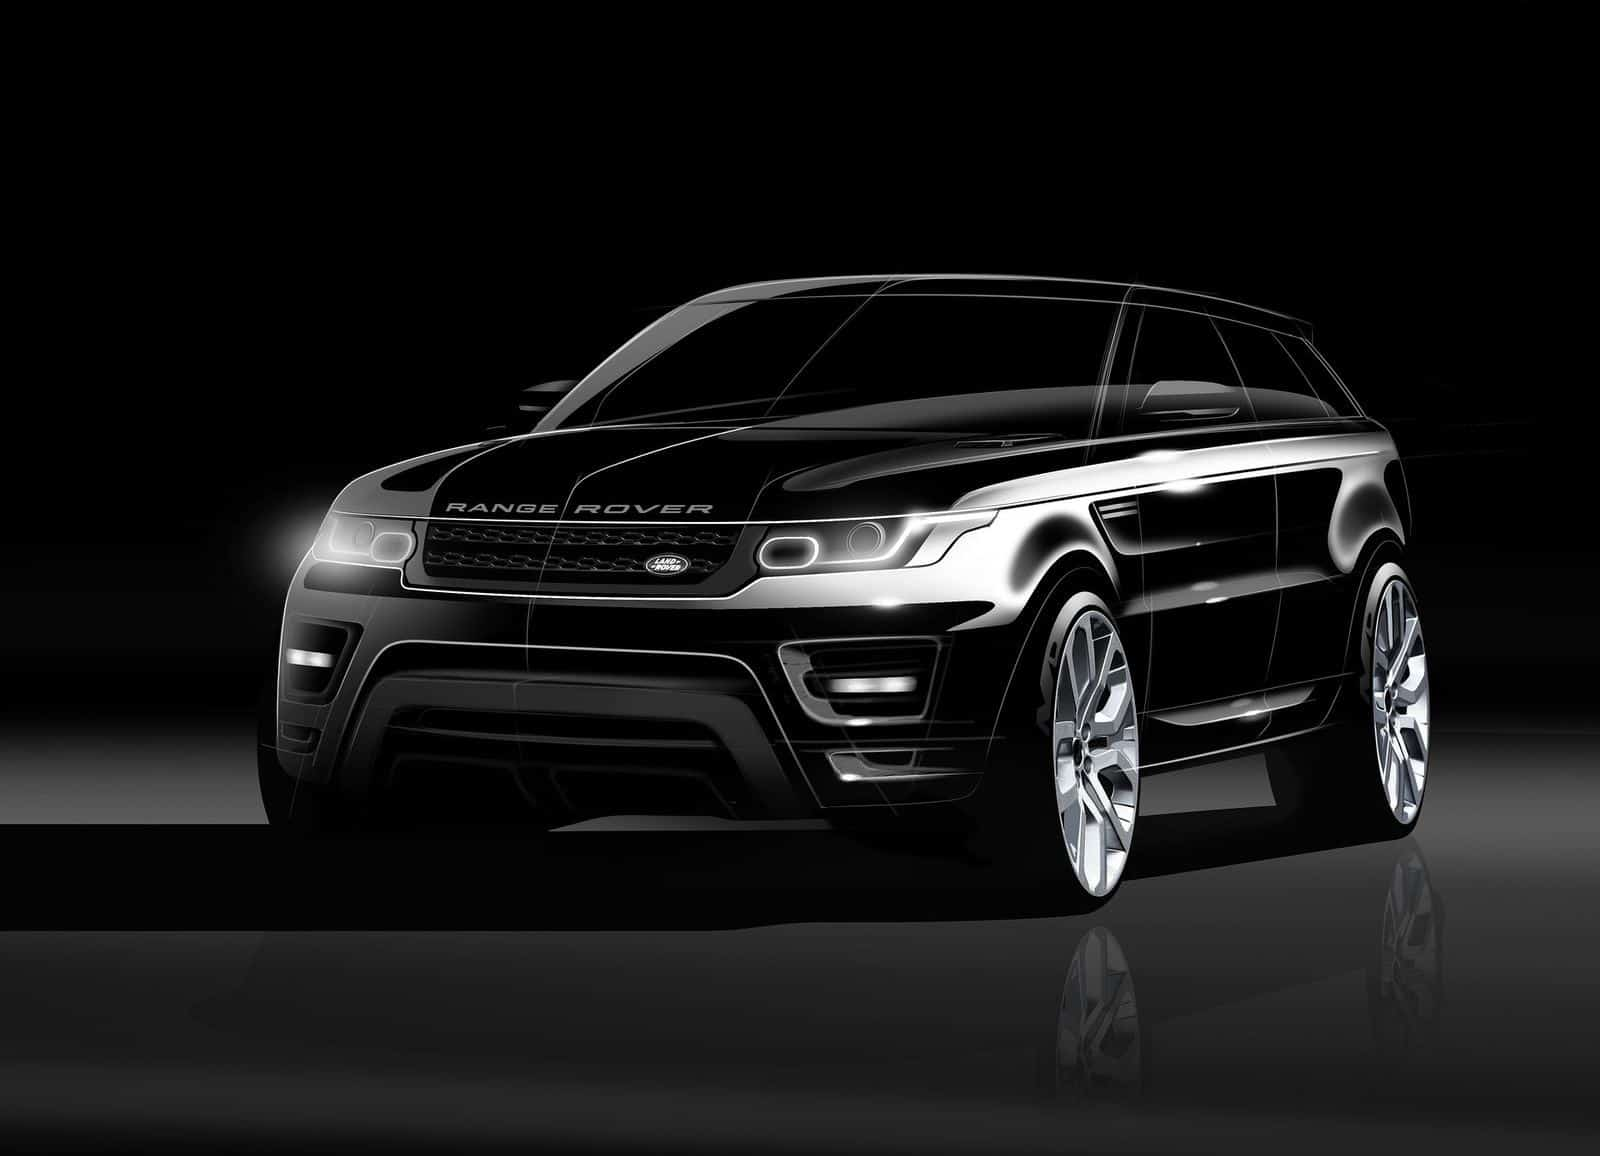 Suv Wallpapers Hd New Range Rover Sport Sketches And Renderings